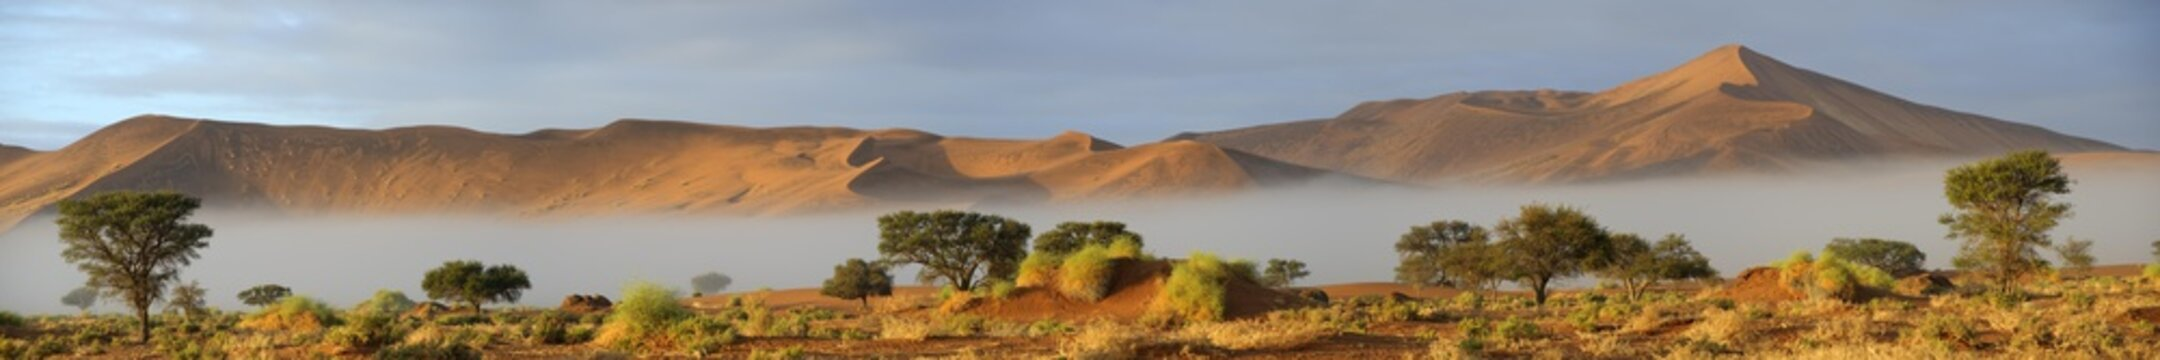 Morning fog and sand dunes at the Sossusvlei in the Namib-Naukluft National Park, Namibia, Africa